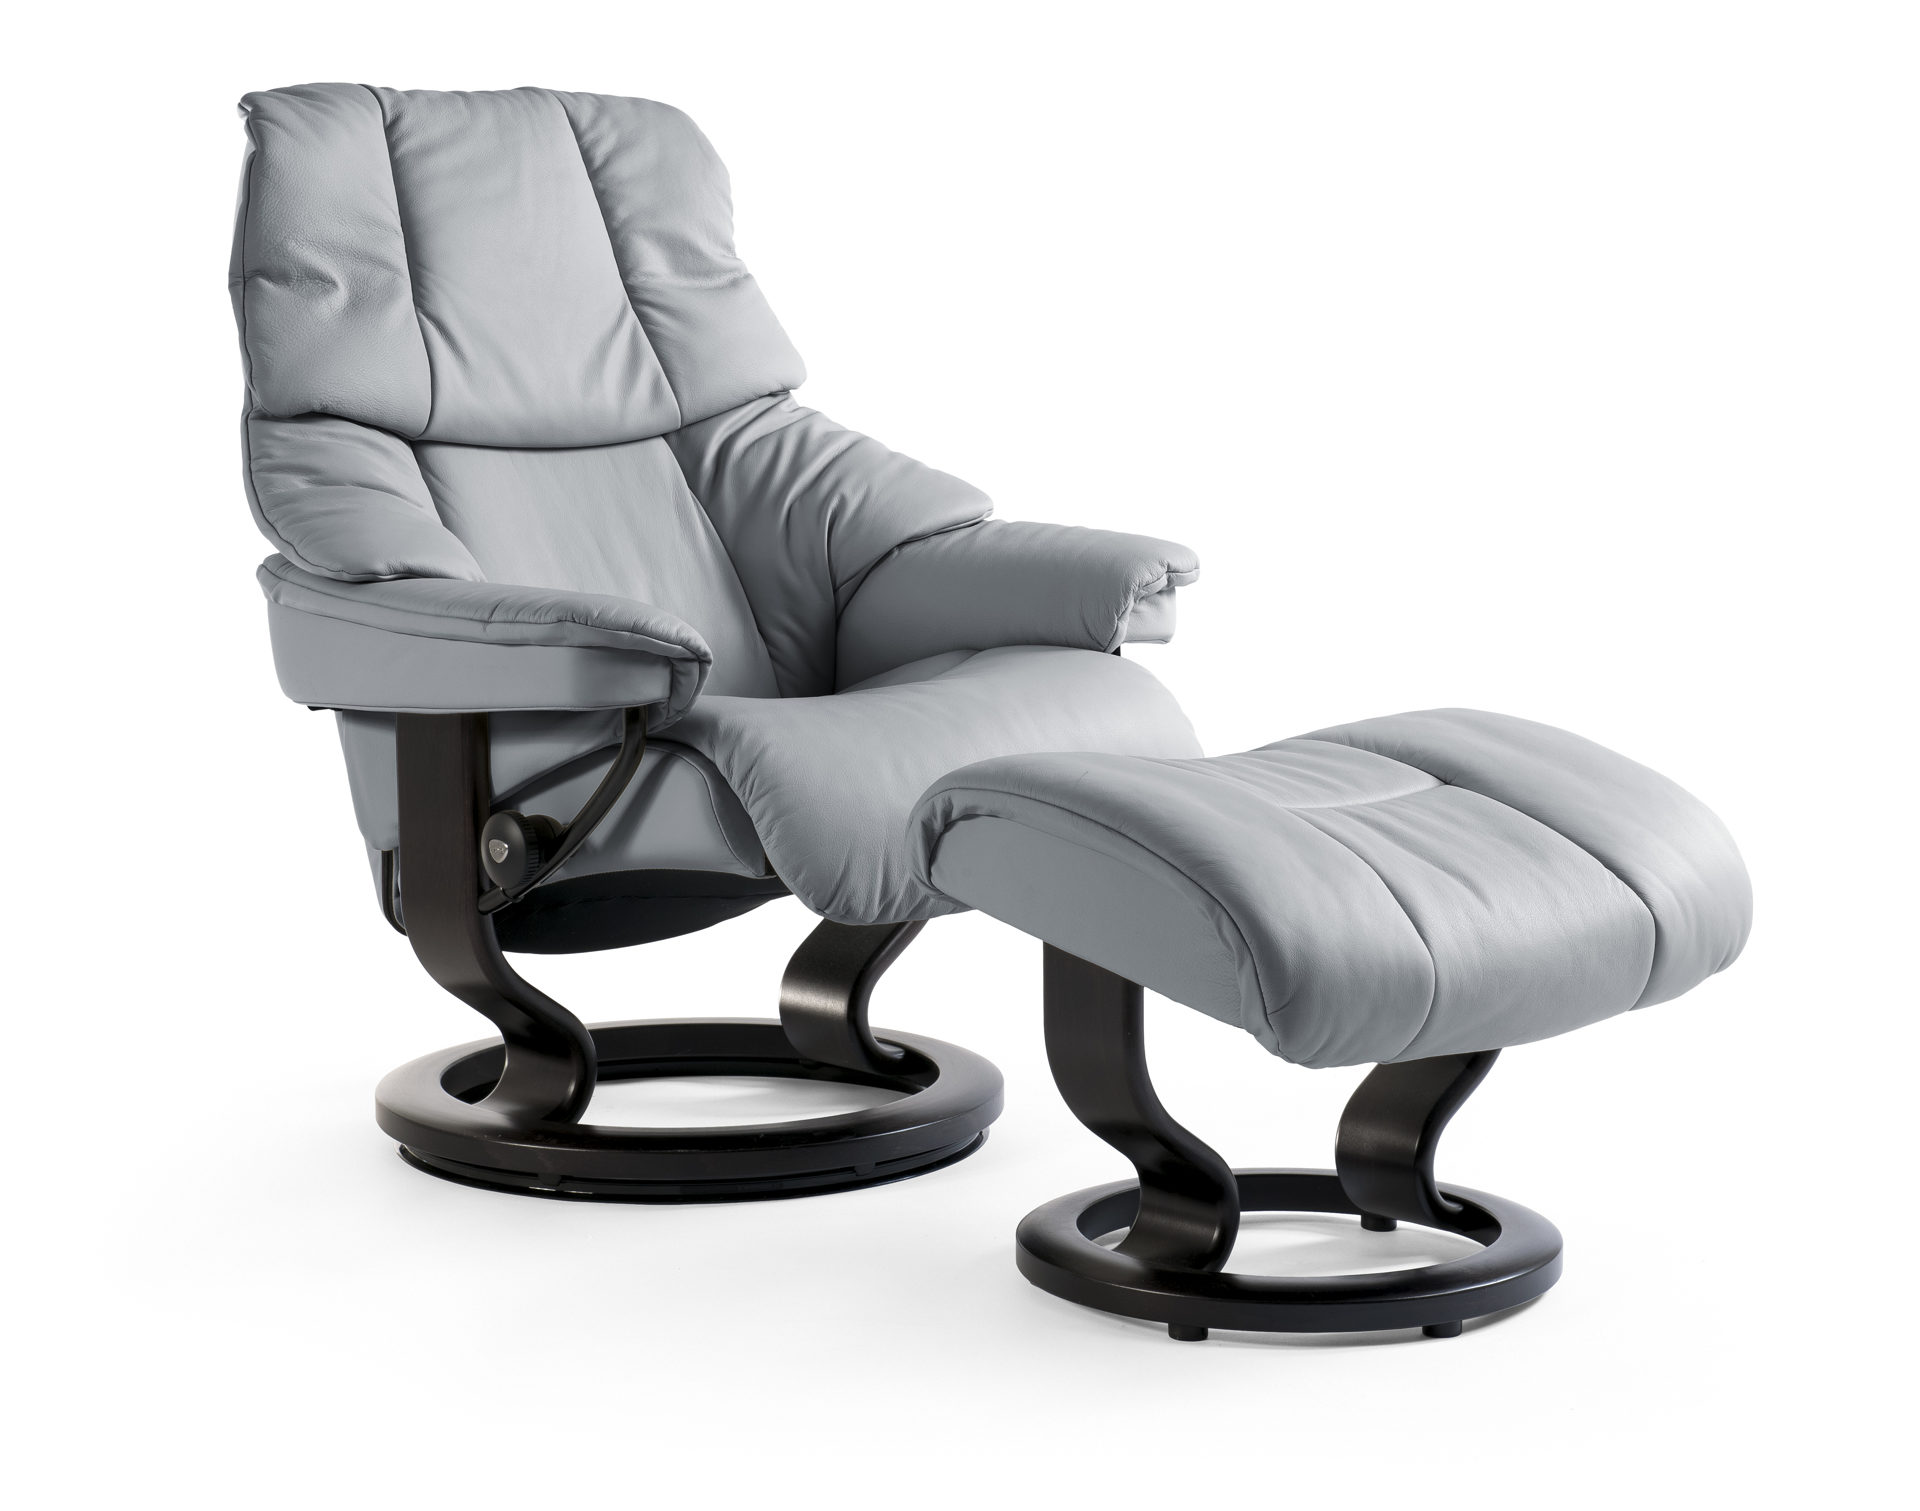 Stressless Sessel Pflege Stressless Reno Relaxsessel Mit Hocker Noblesse Grey Wenge Small